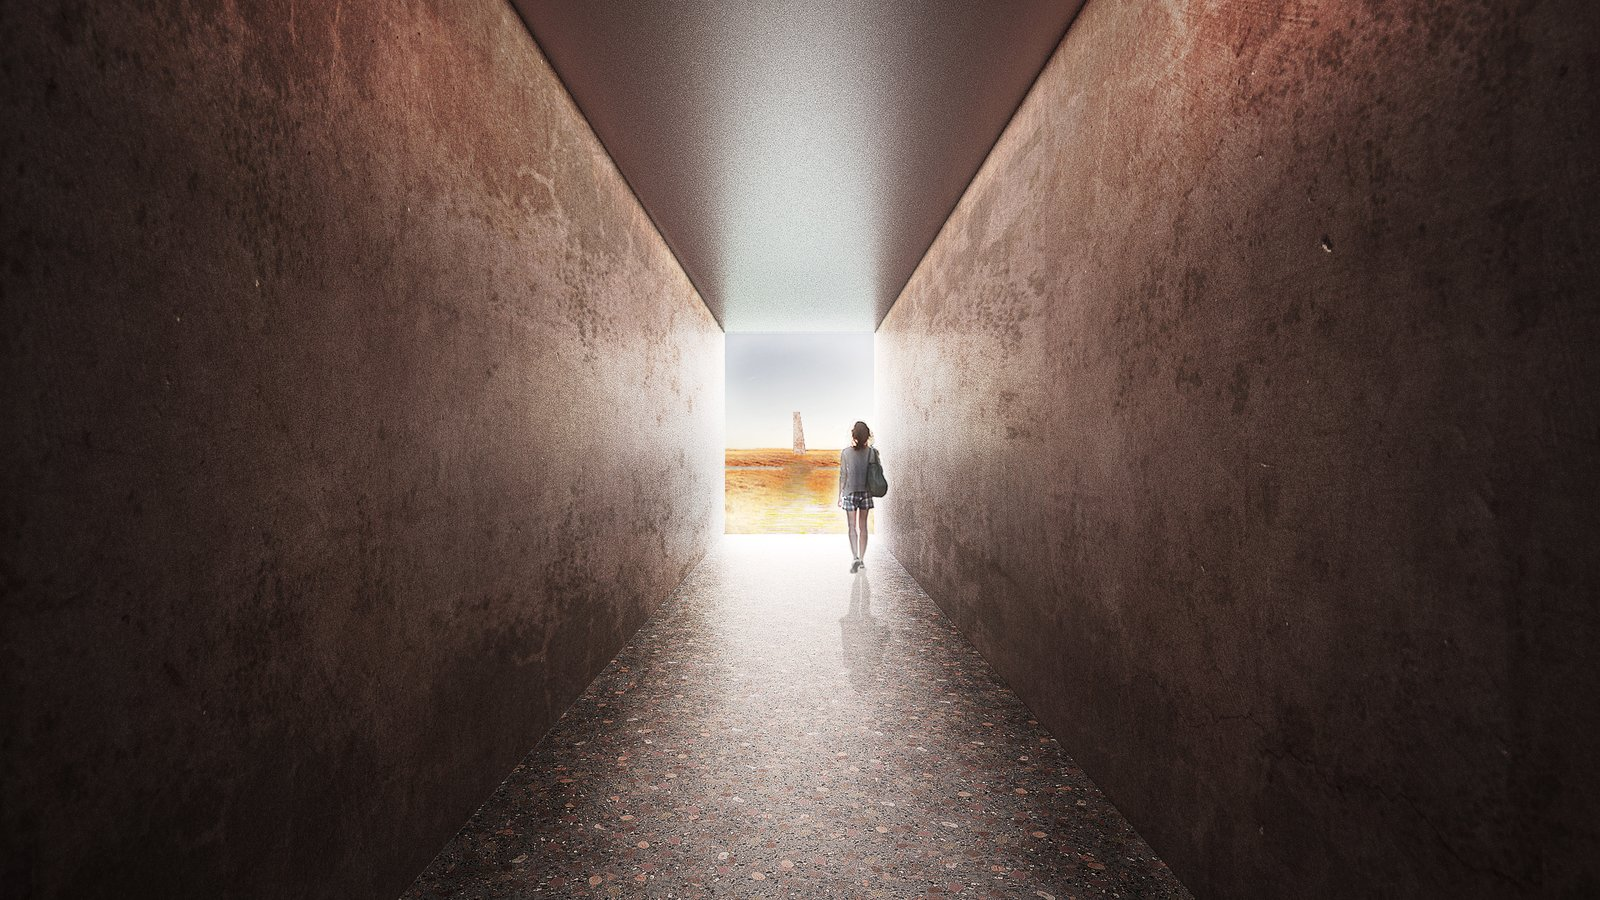 Hallway tunnel  Photo 17 of 18 in A Proposed Icelandic Resort Celebrates Wellness and its Magical Surroundings